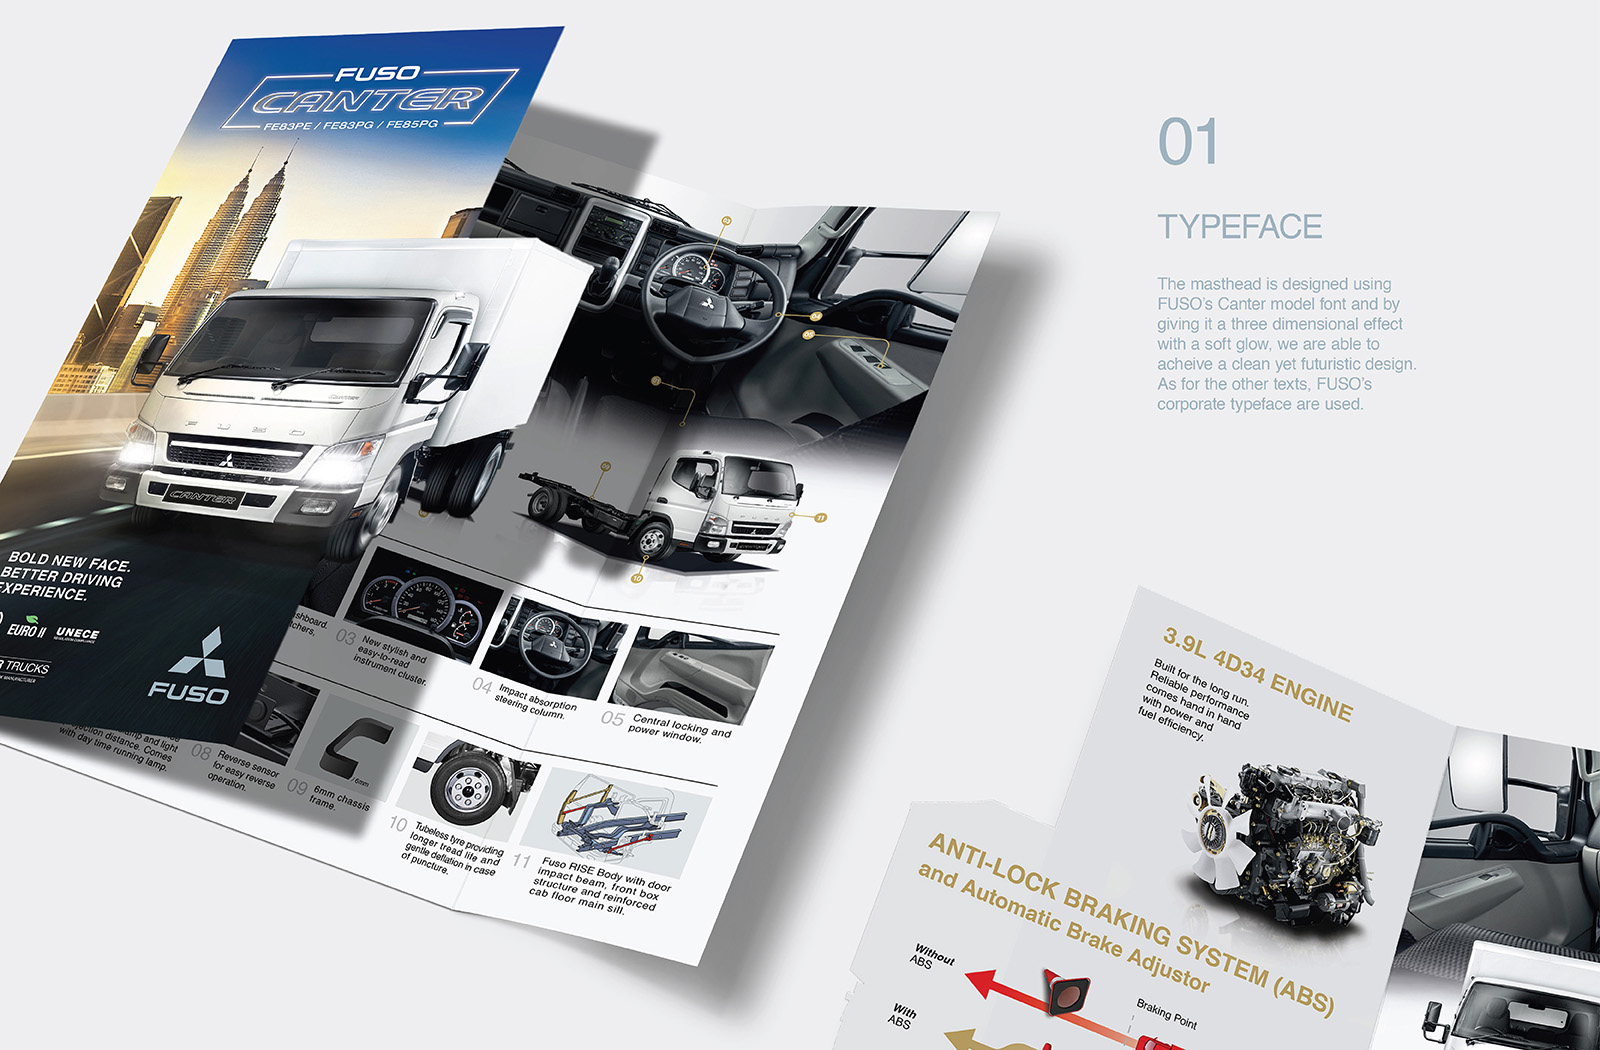 Fuso Trucks Canter FE/FG 2017 brochure design featuring a die-cut of the the truck against two different background showcasing truck's versatility in various environment with USP